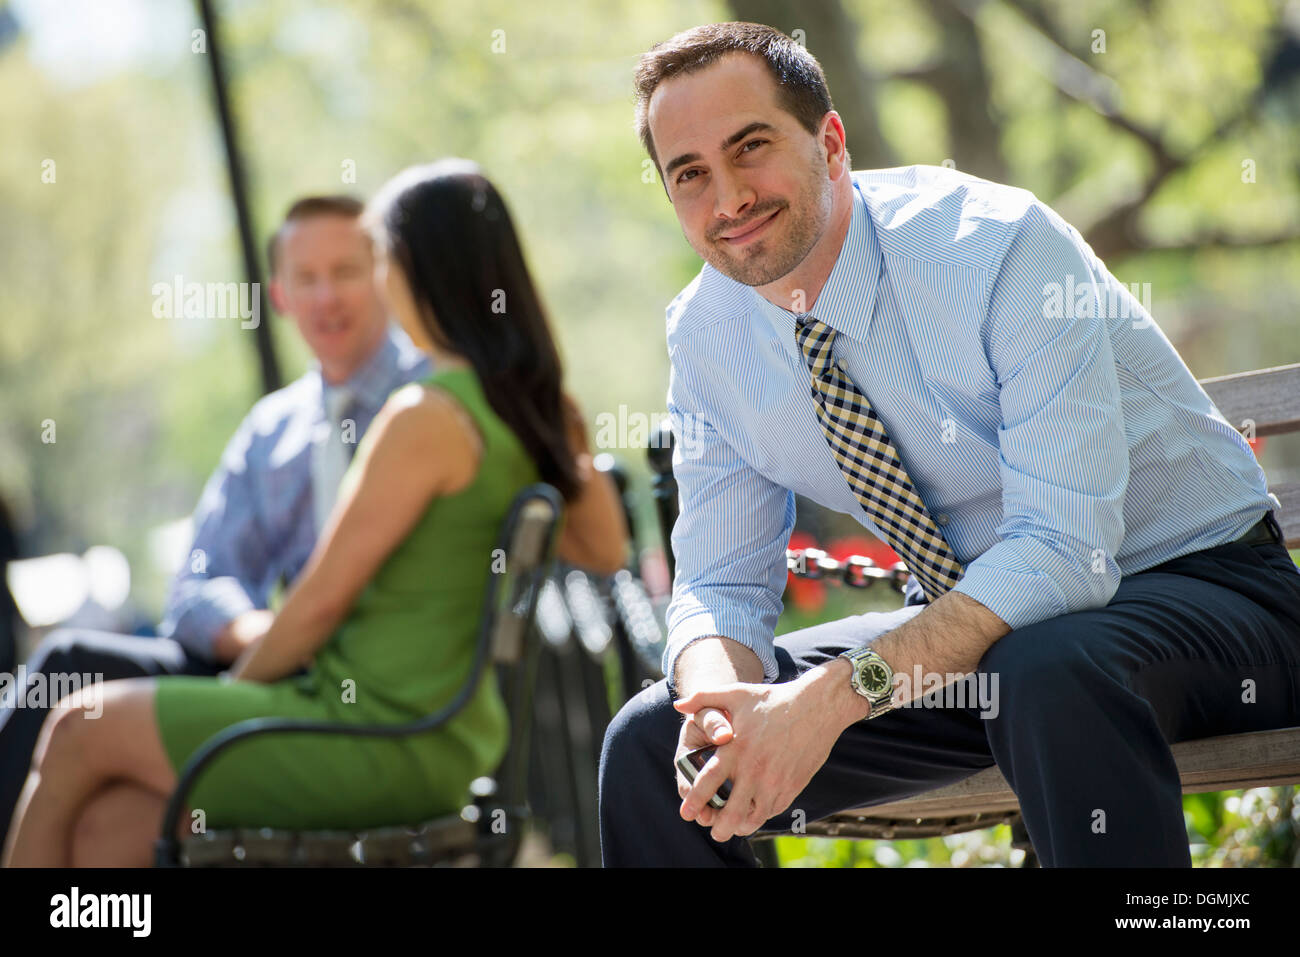 A businesswoman and two businessmen outdoors in the city. Stock Photo